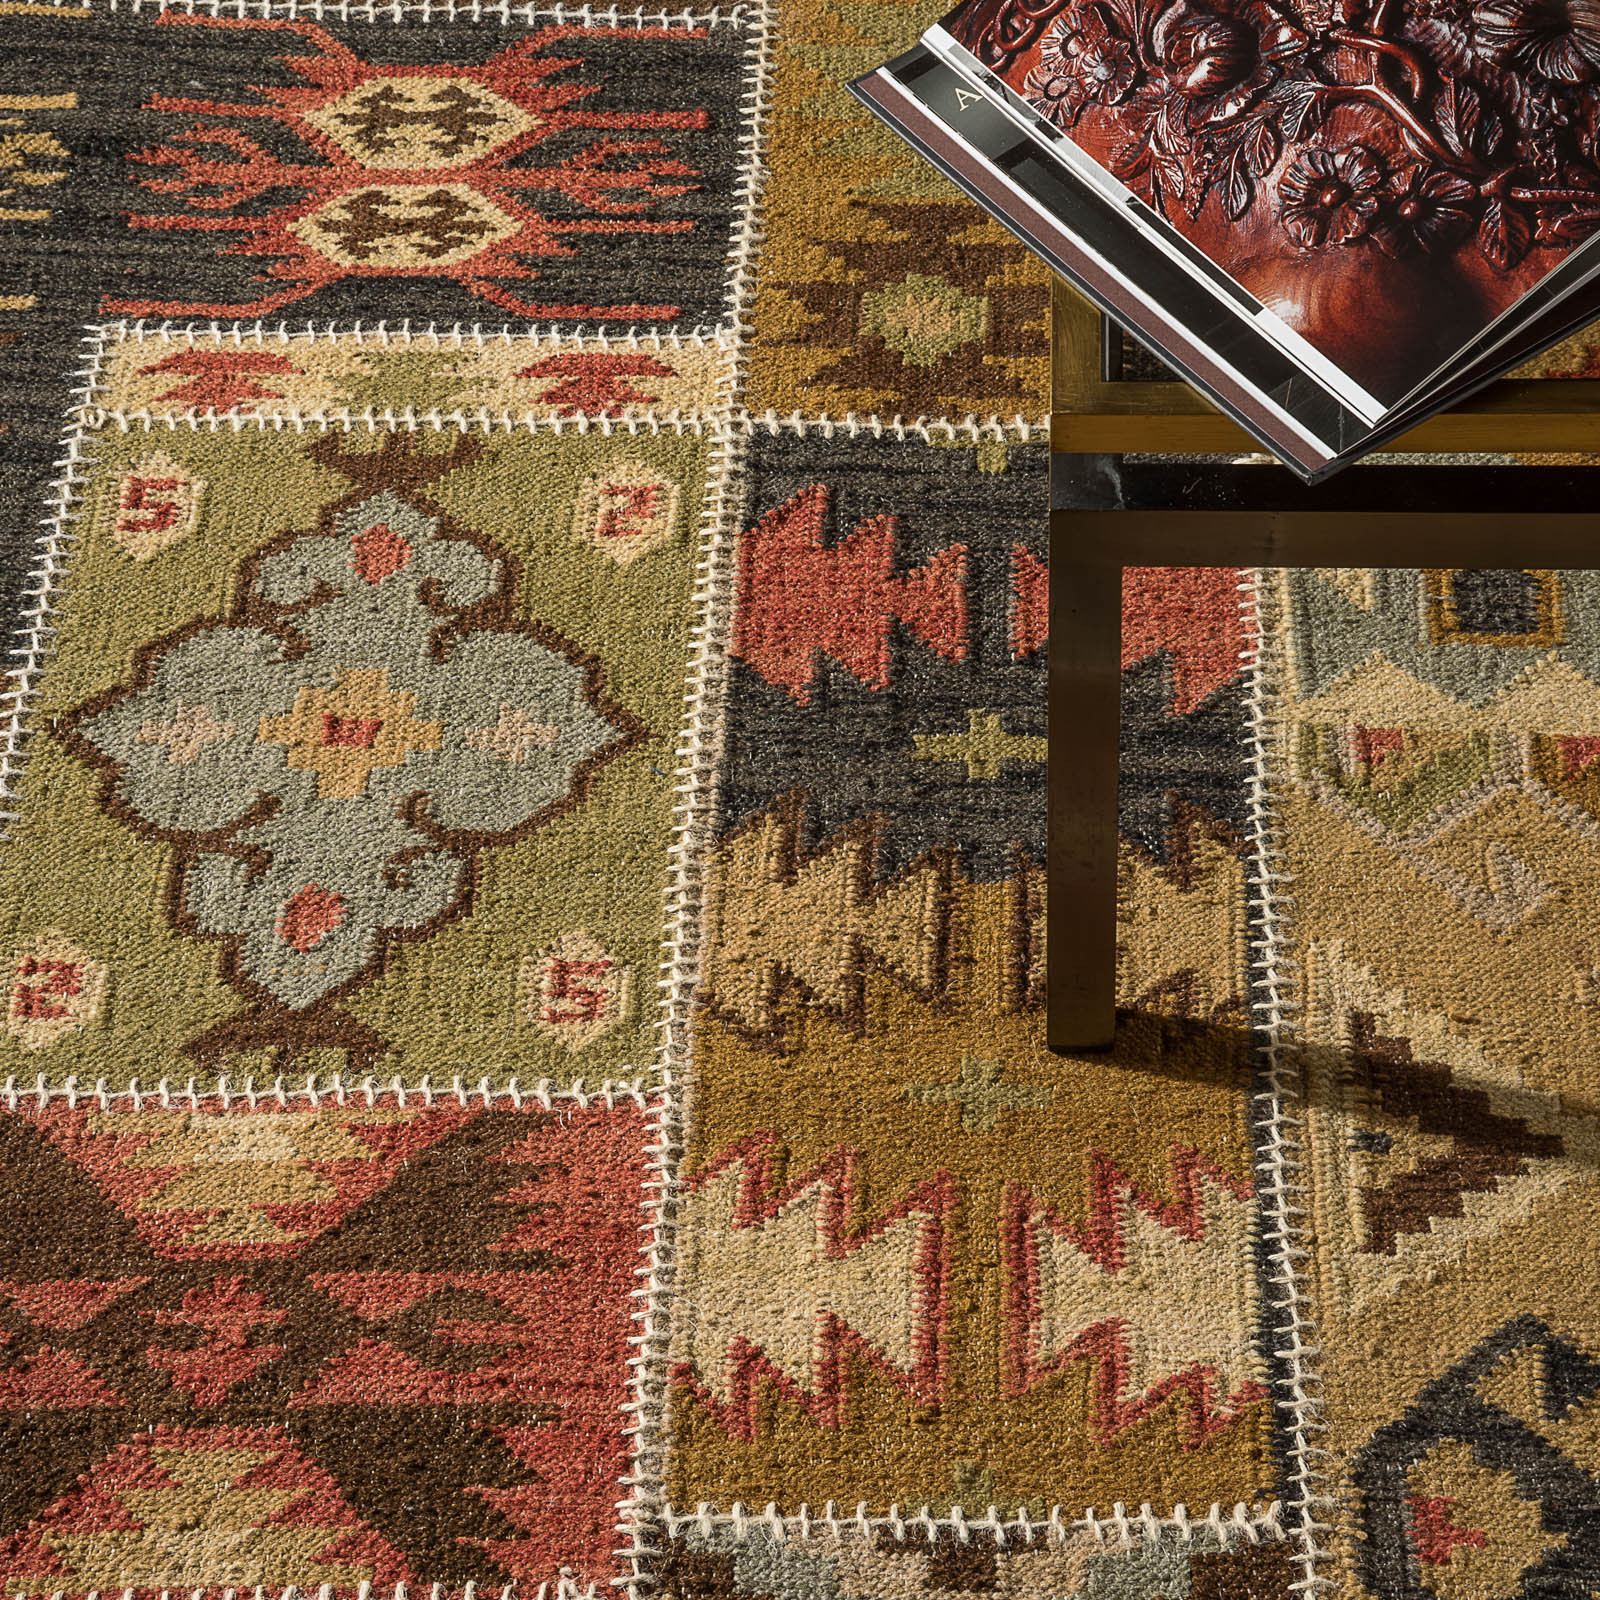 patterned kilim rug from the rug seller with table on it